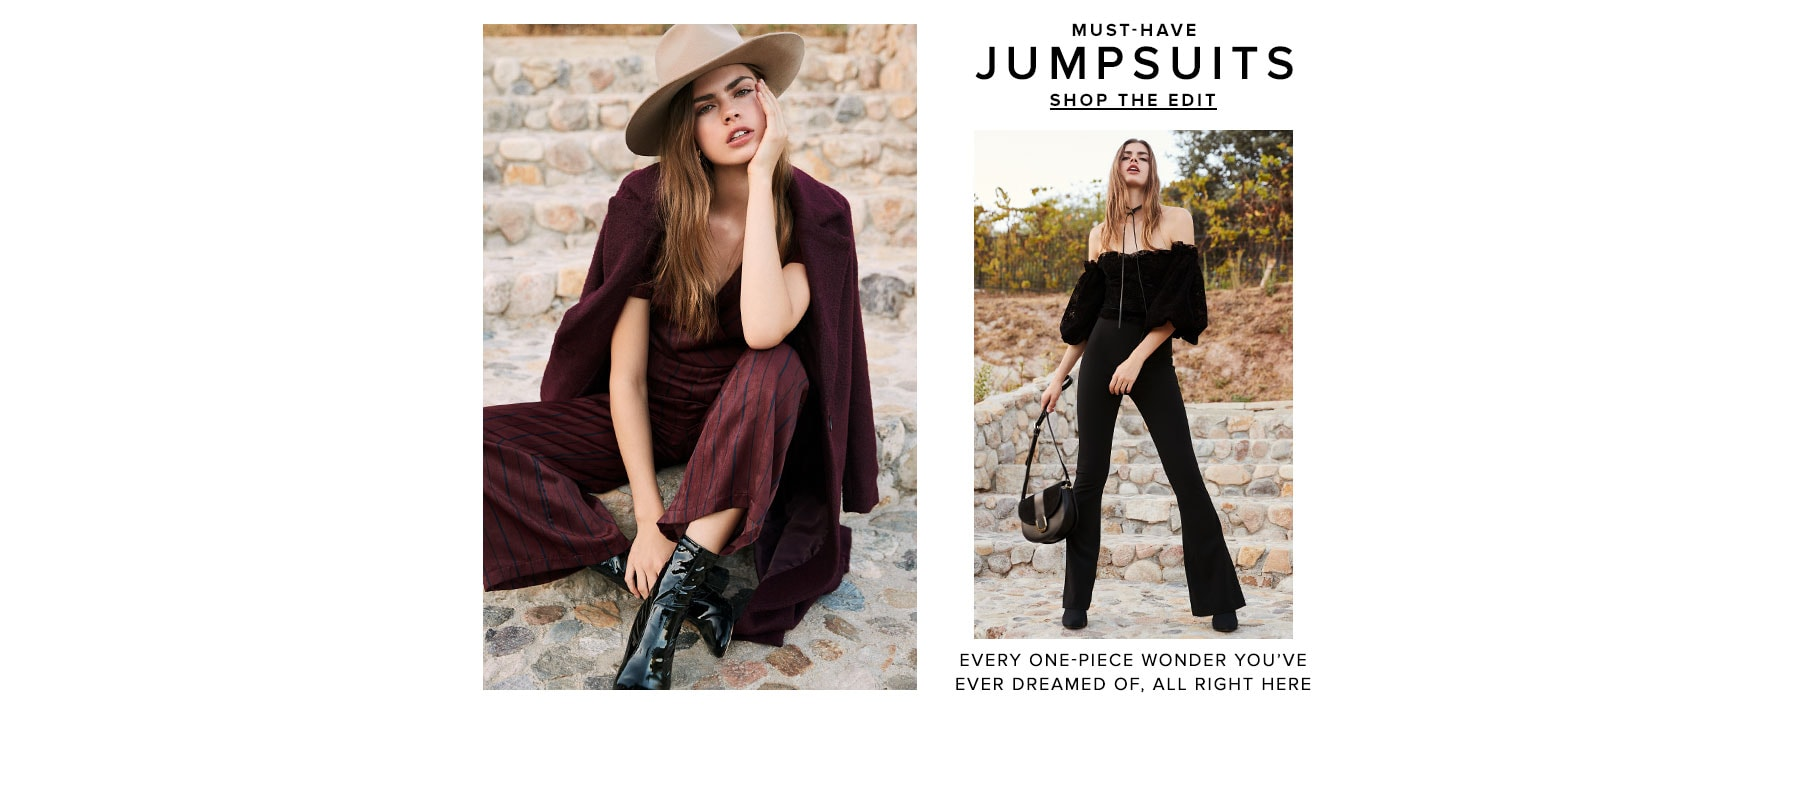 Must-Have Jumpsuits. Every one-piece wonder you've ever dreamed of, all right here. Shop the Edit.